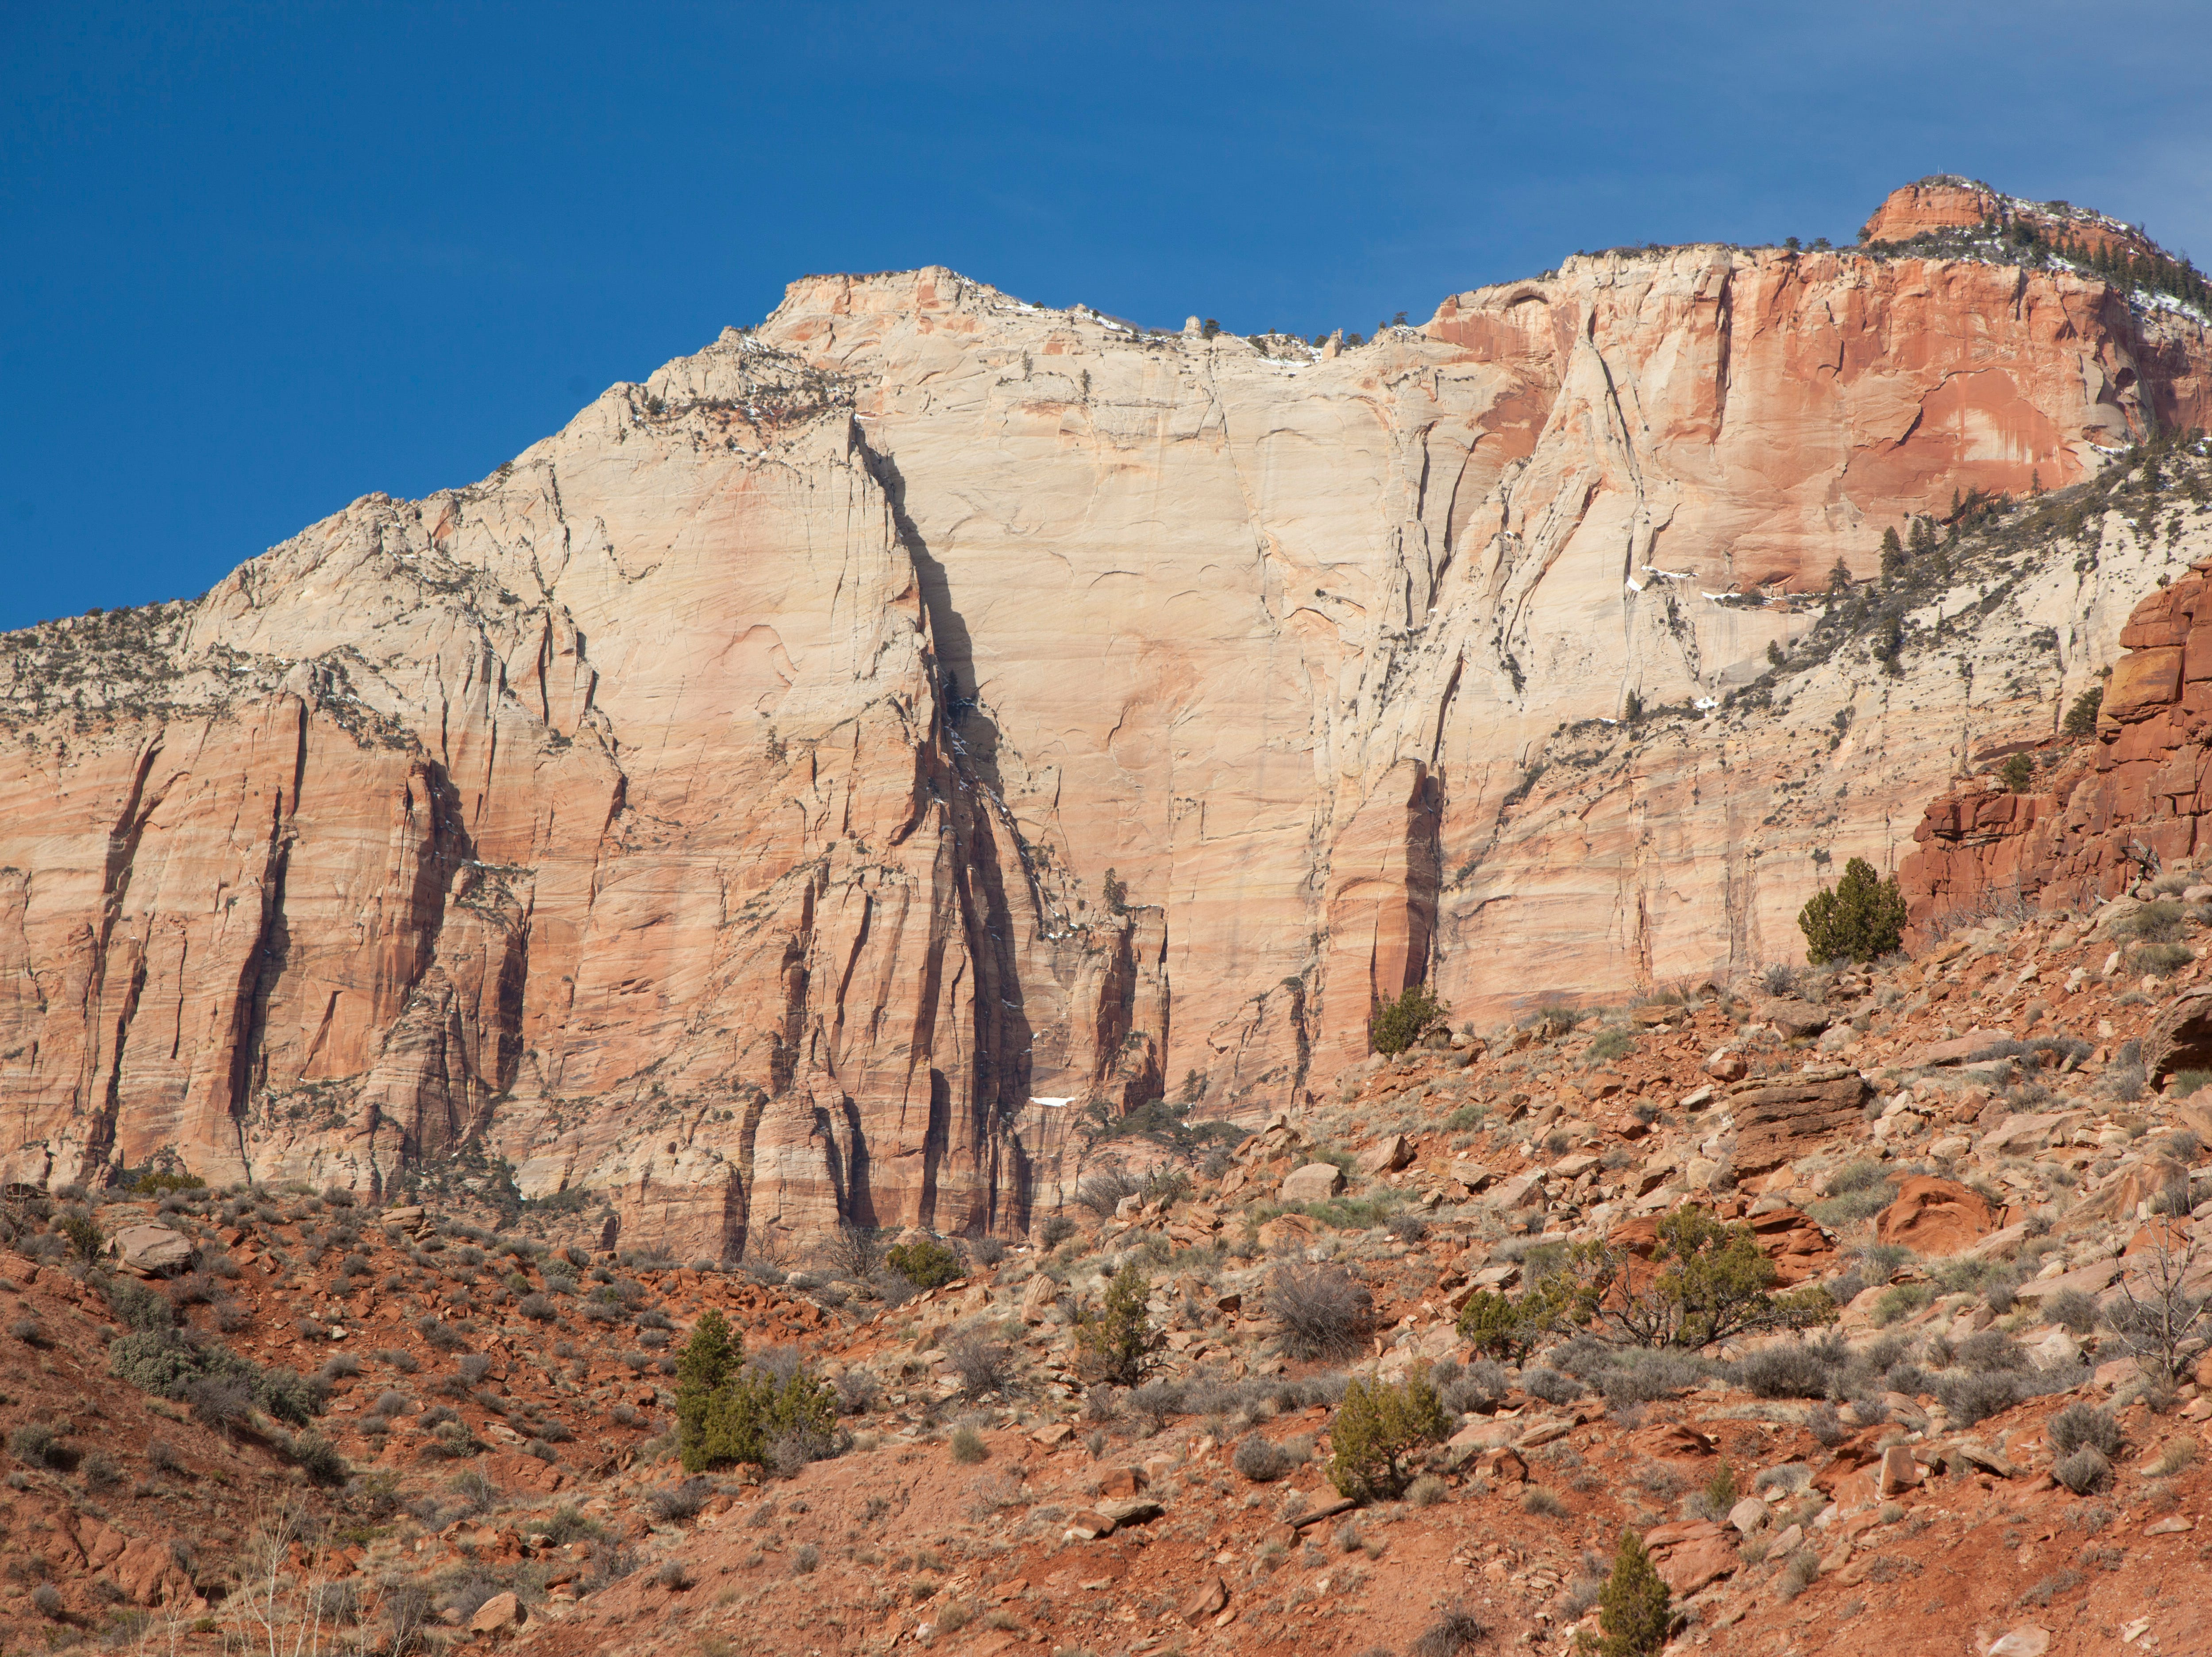 Zion National Park survives the government shutdown thanks to the help of the Zion National Park Forever Project Thursday, Jan. 31, 2019.